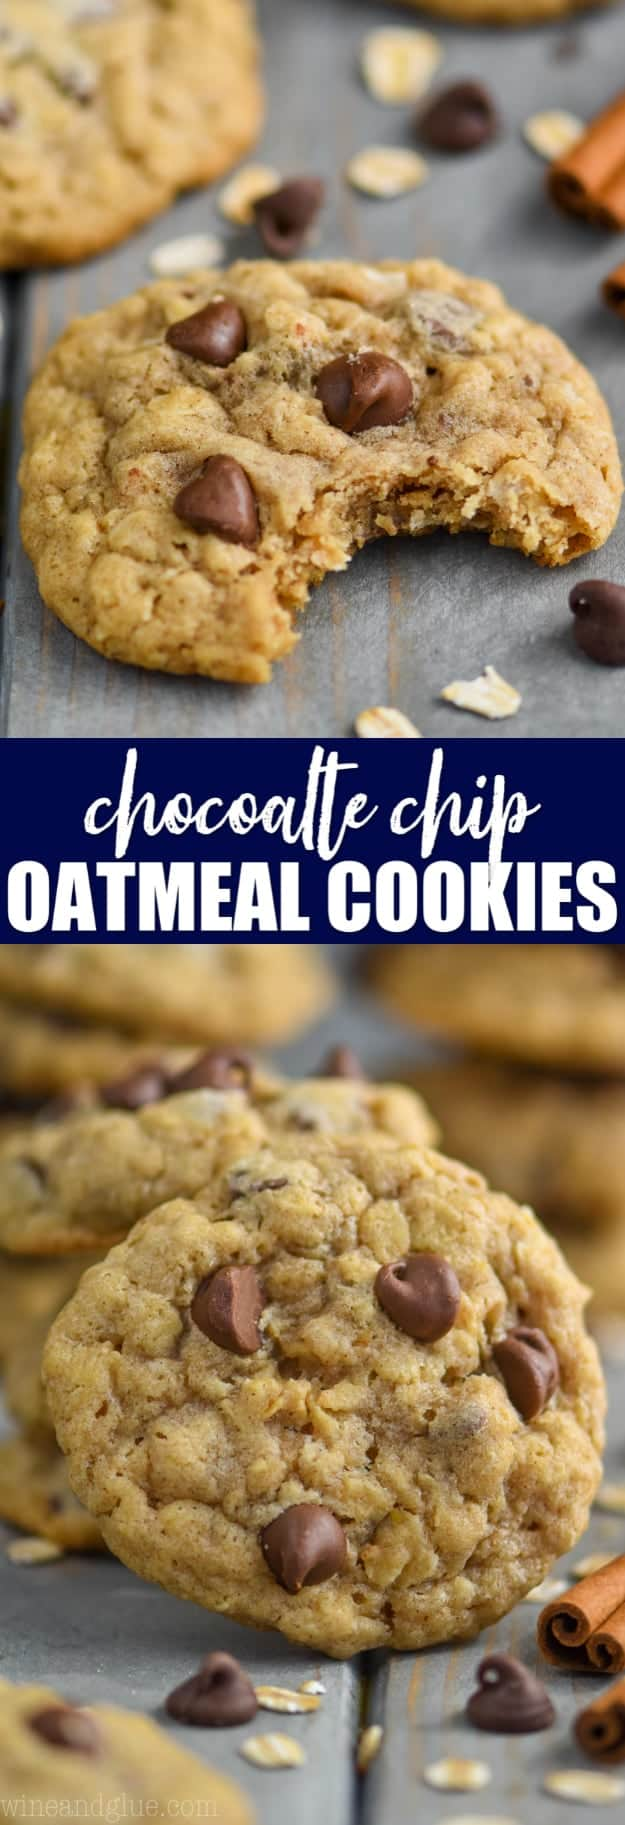 collage of photos of chewy oatmeal chocolate chip cookies